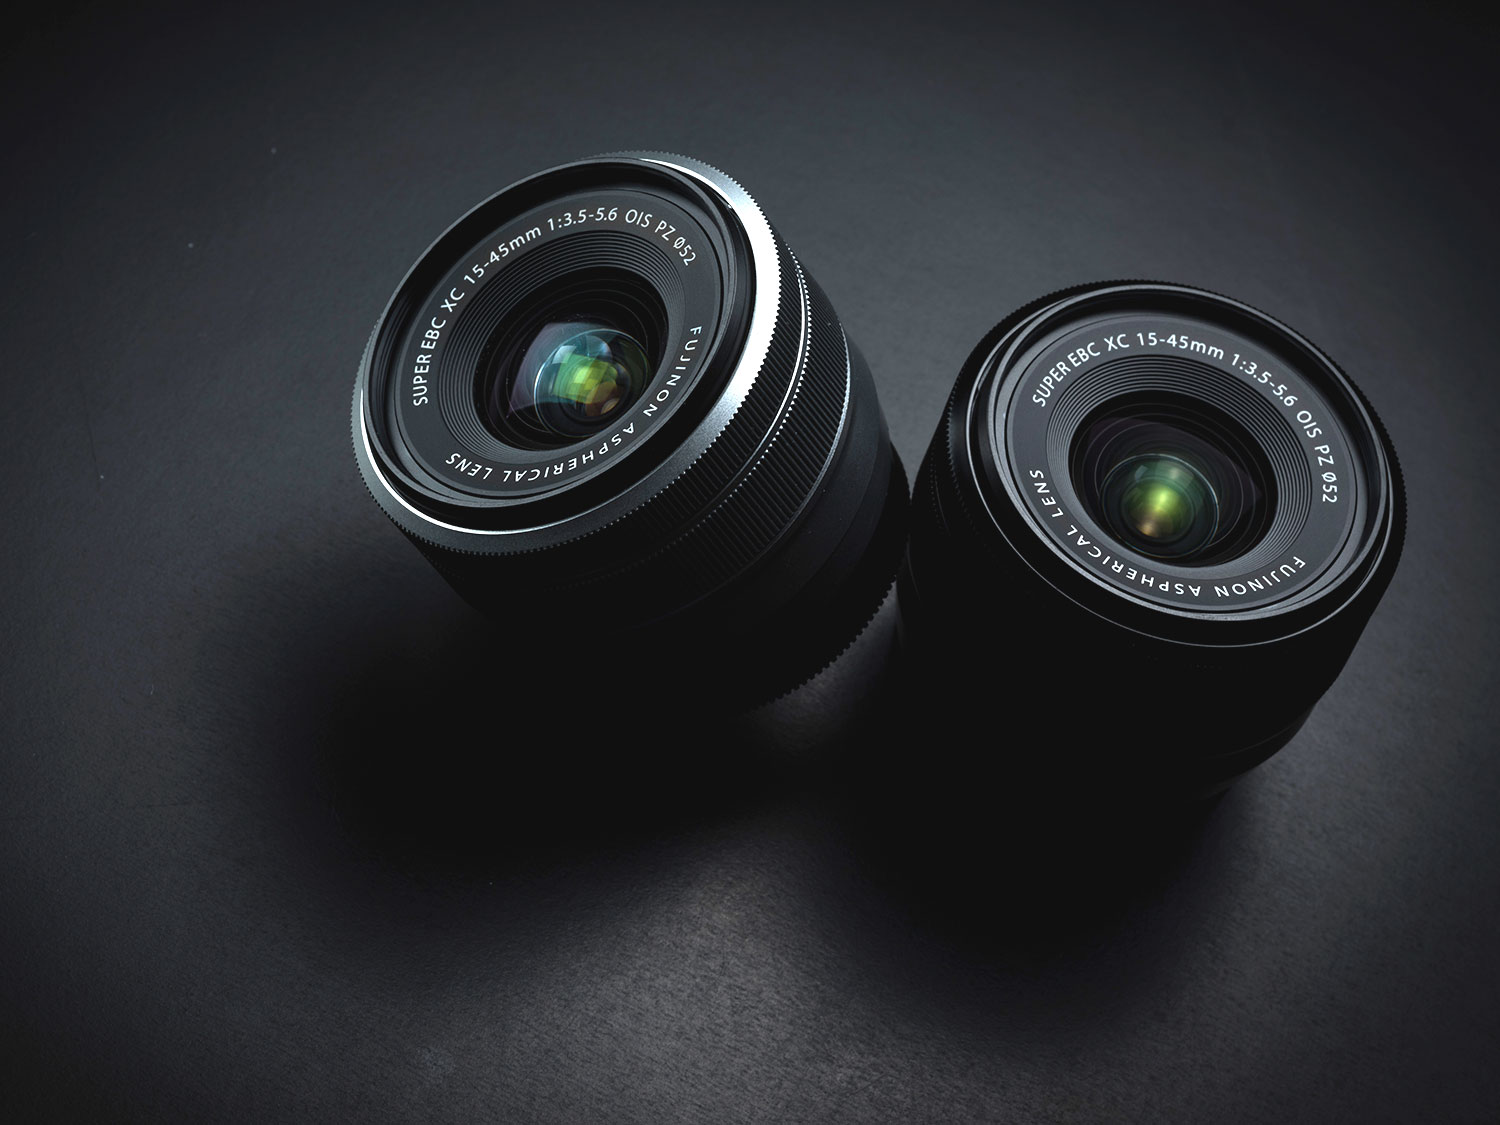 JUST ANNOUNCED: The FUJINON XC 15-45mm F3.5-5.6 OIS PZ